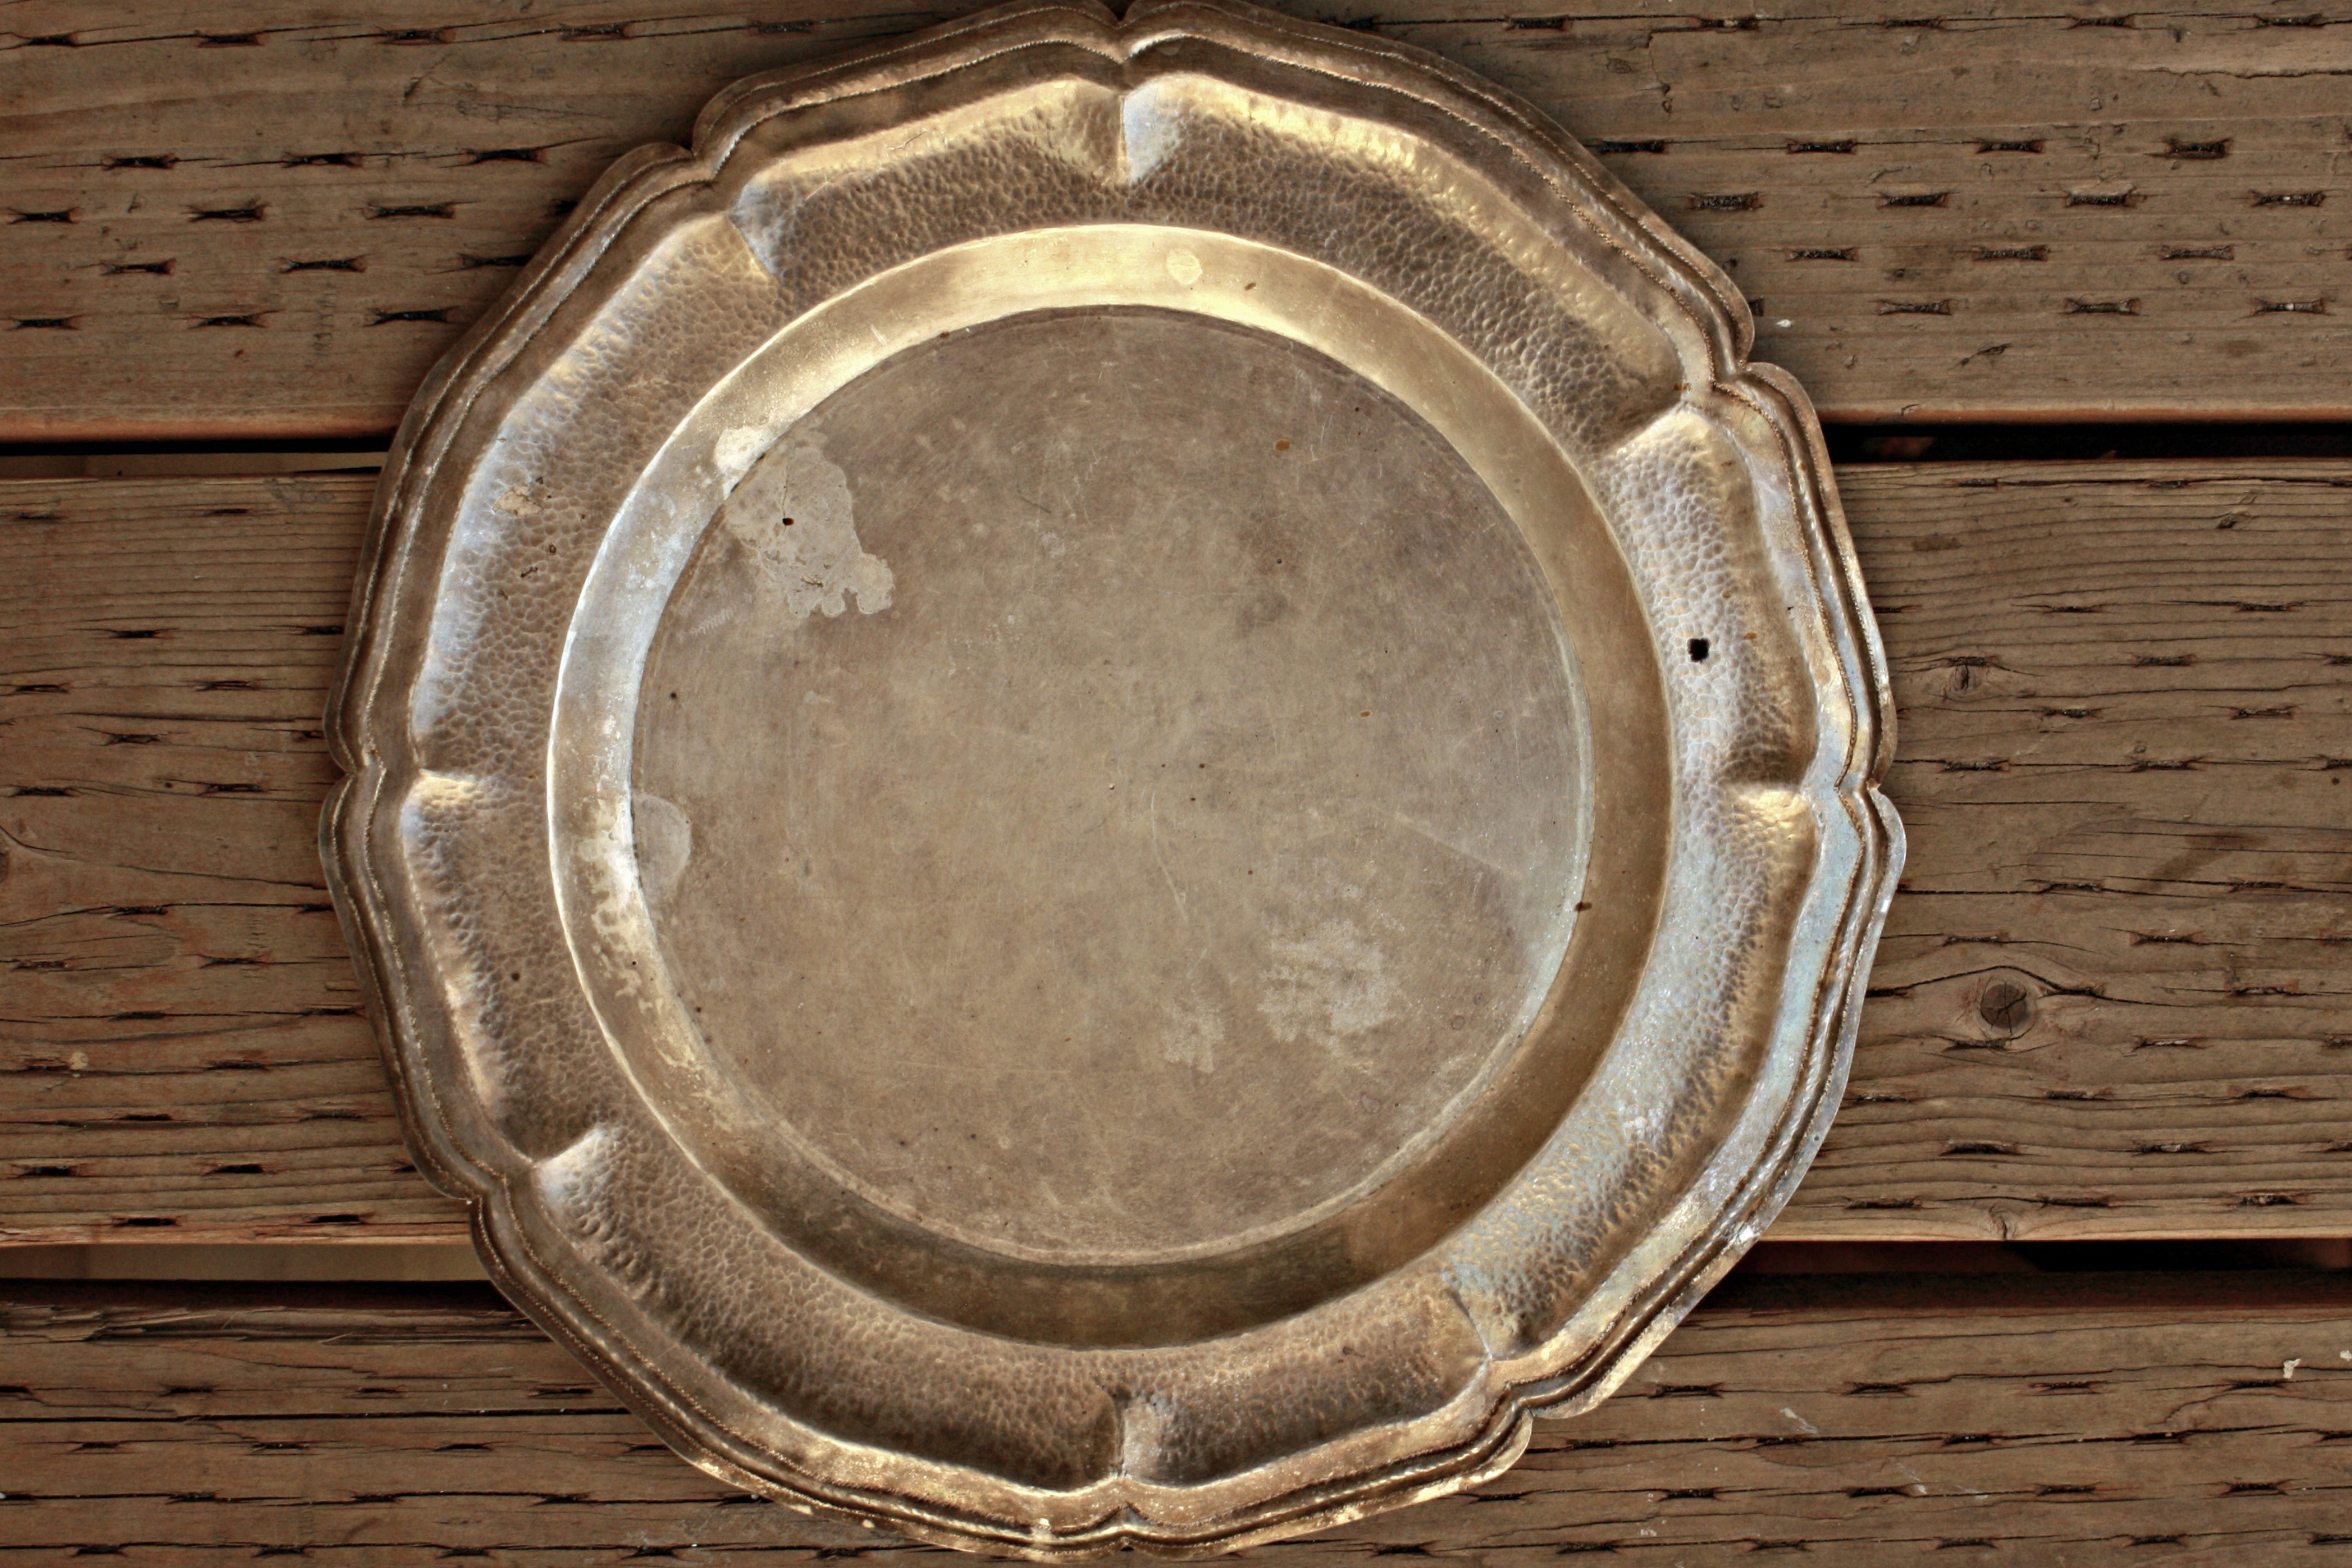 How to clean silver at home: effective methods